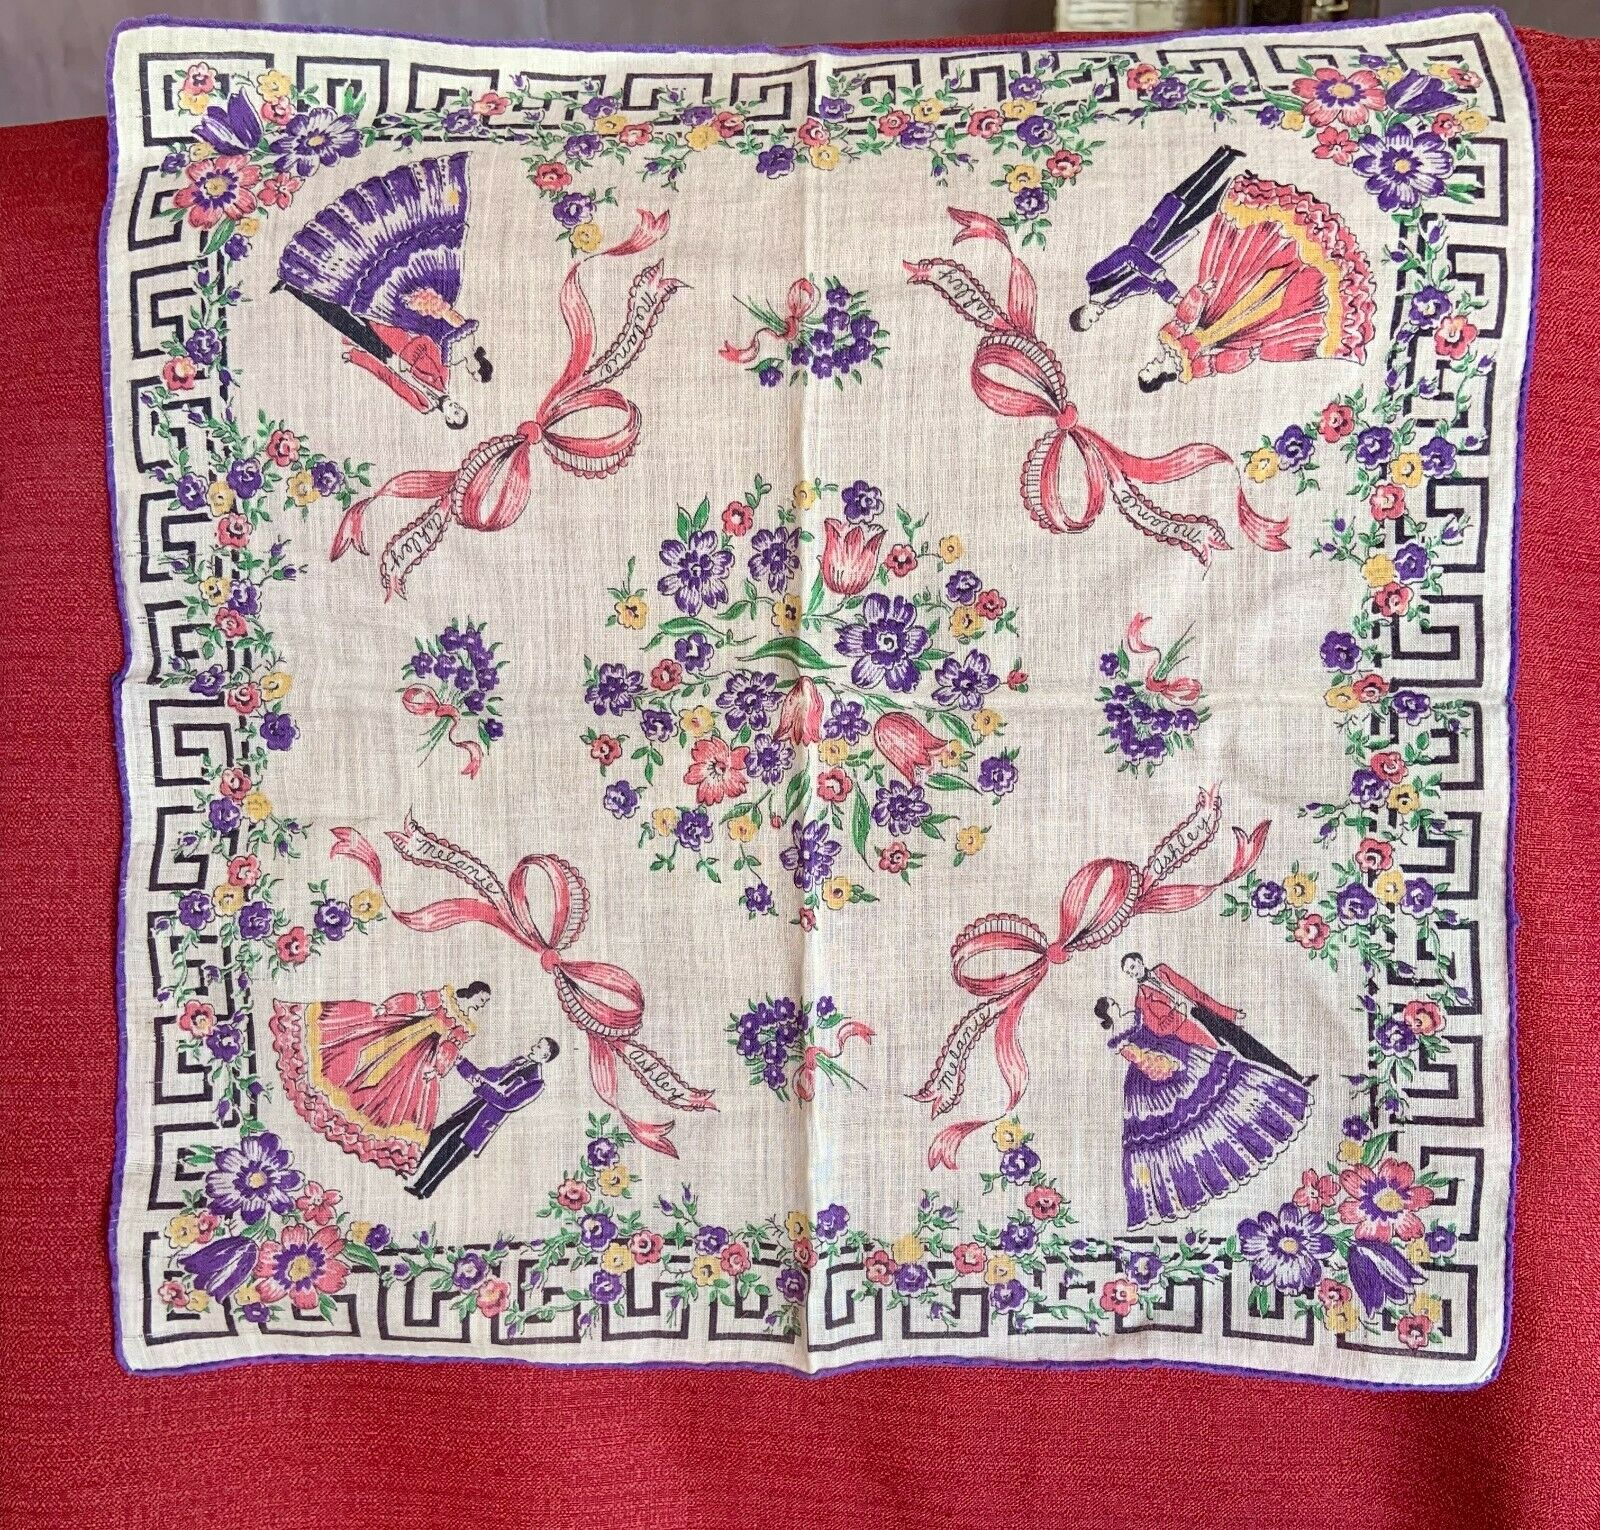 Vintage 1940 gone With The Wind Hankerchief  - $15.00